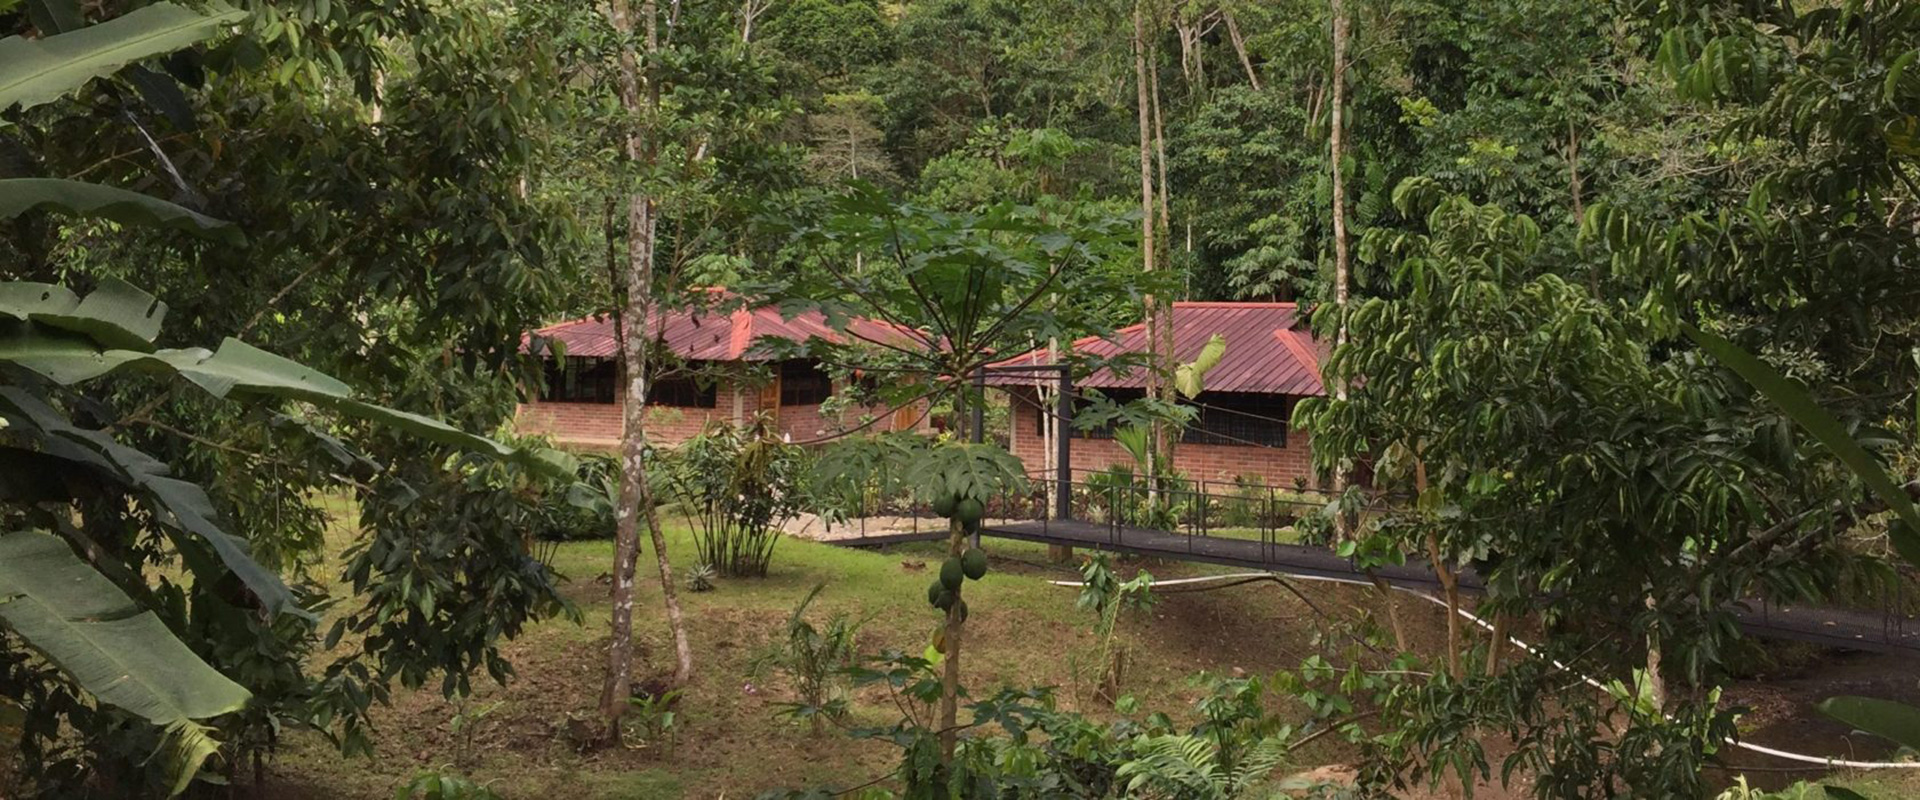 Yachana Lodge Amazon Tours